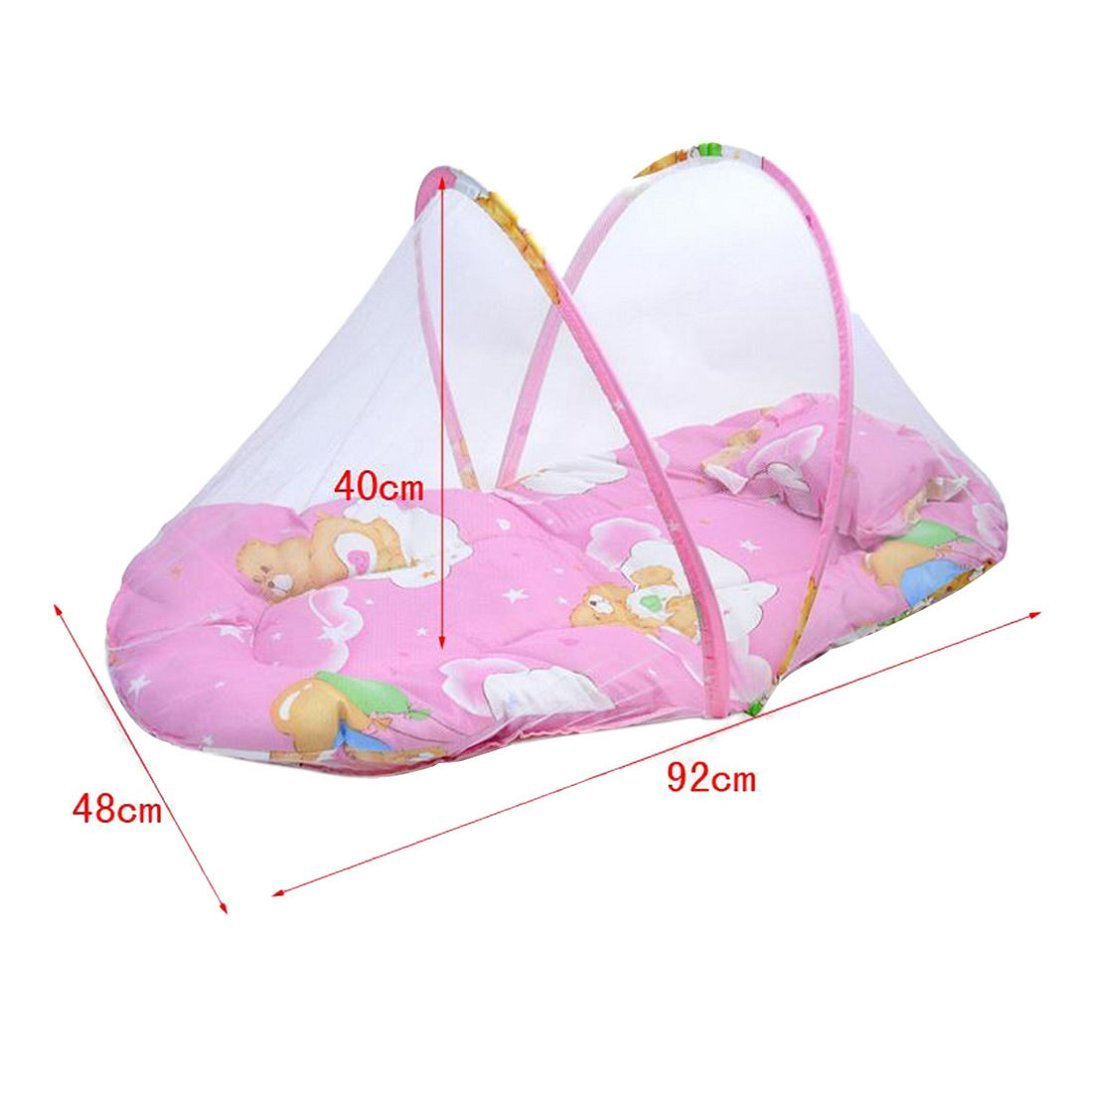 Sunward Hot! Baby Bed Mosquito Net with Cushion Portable Folding Crib Mattress (Pink) by Sunward (Image #5)